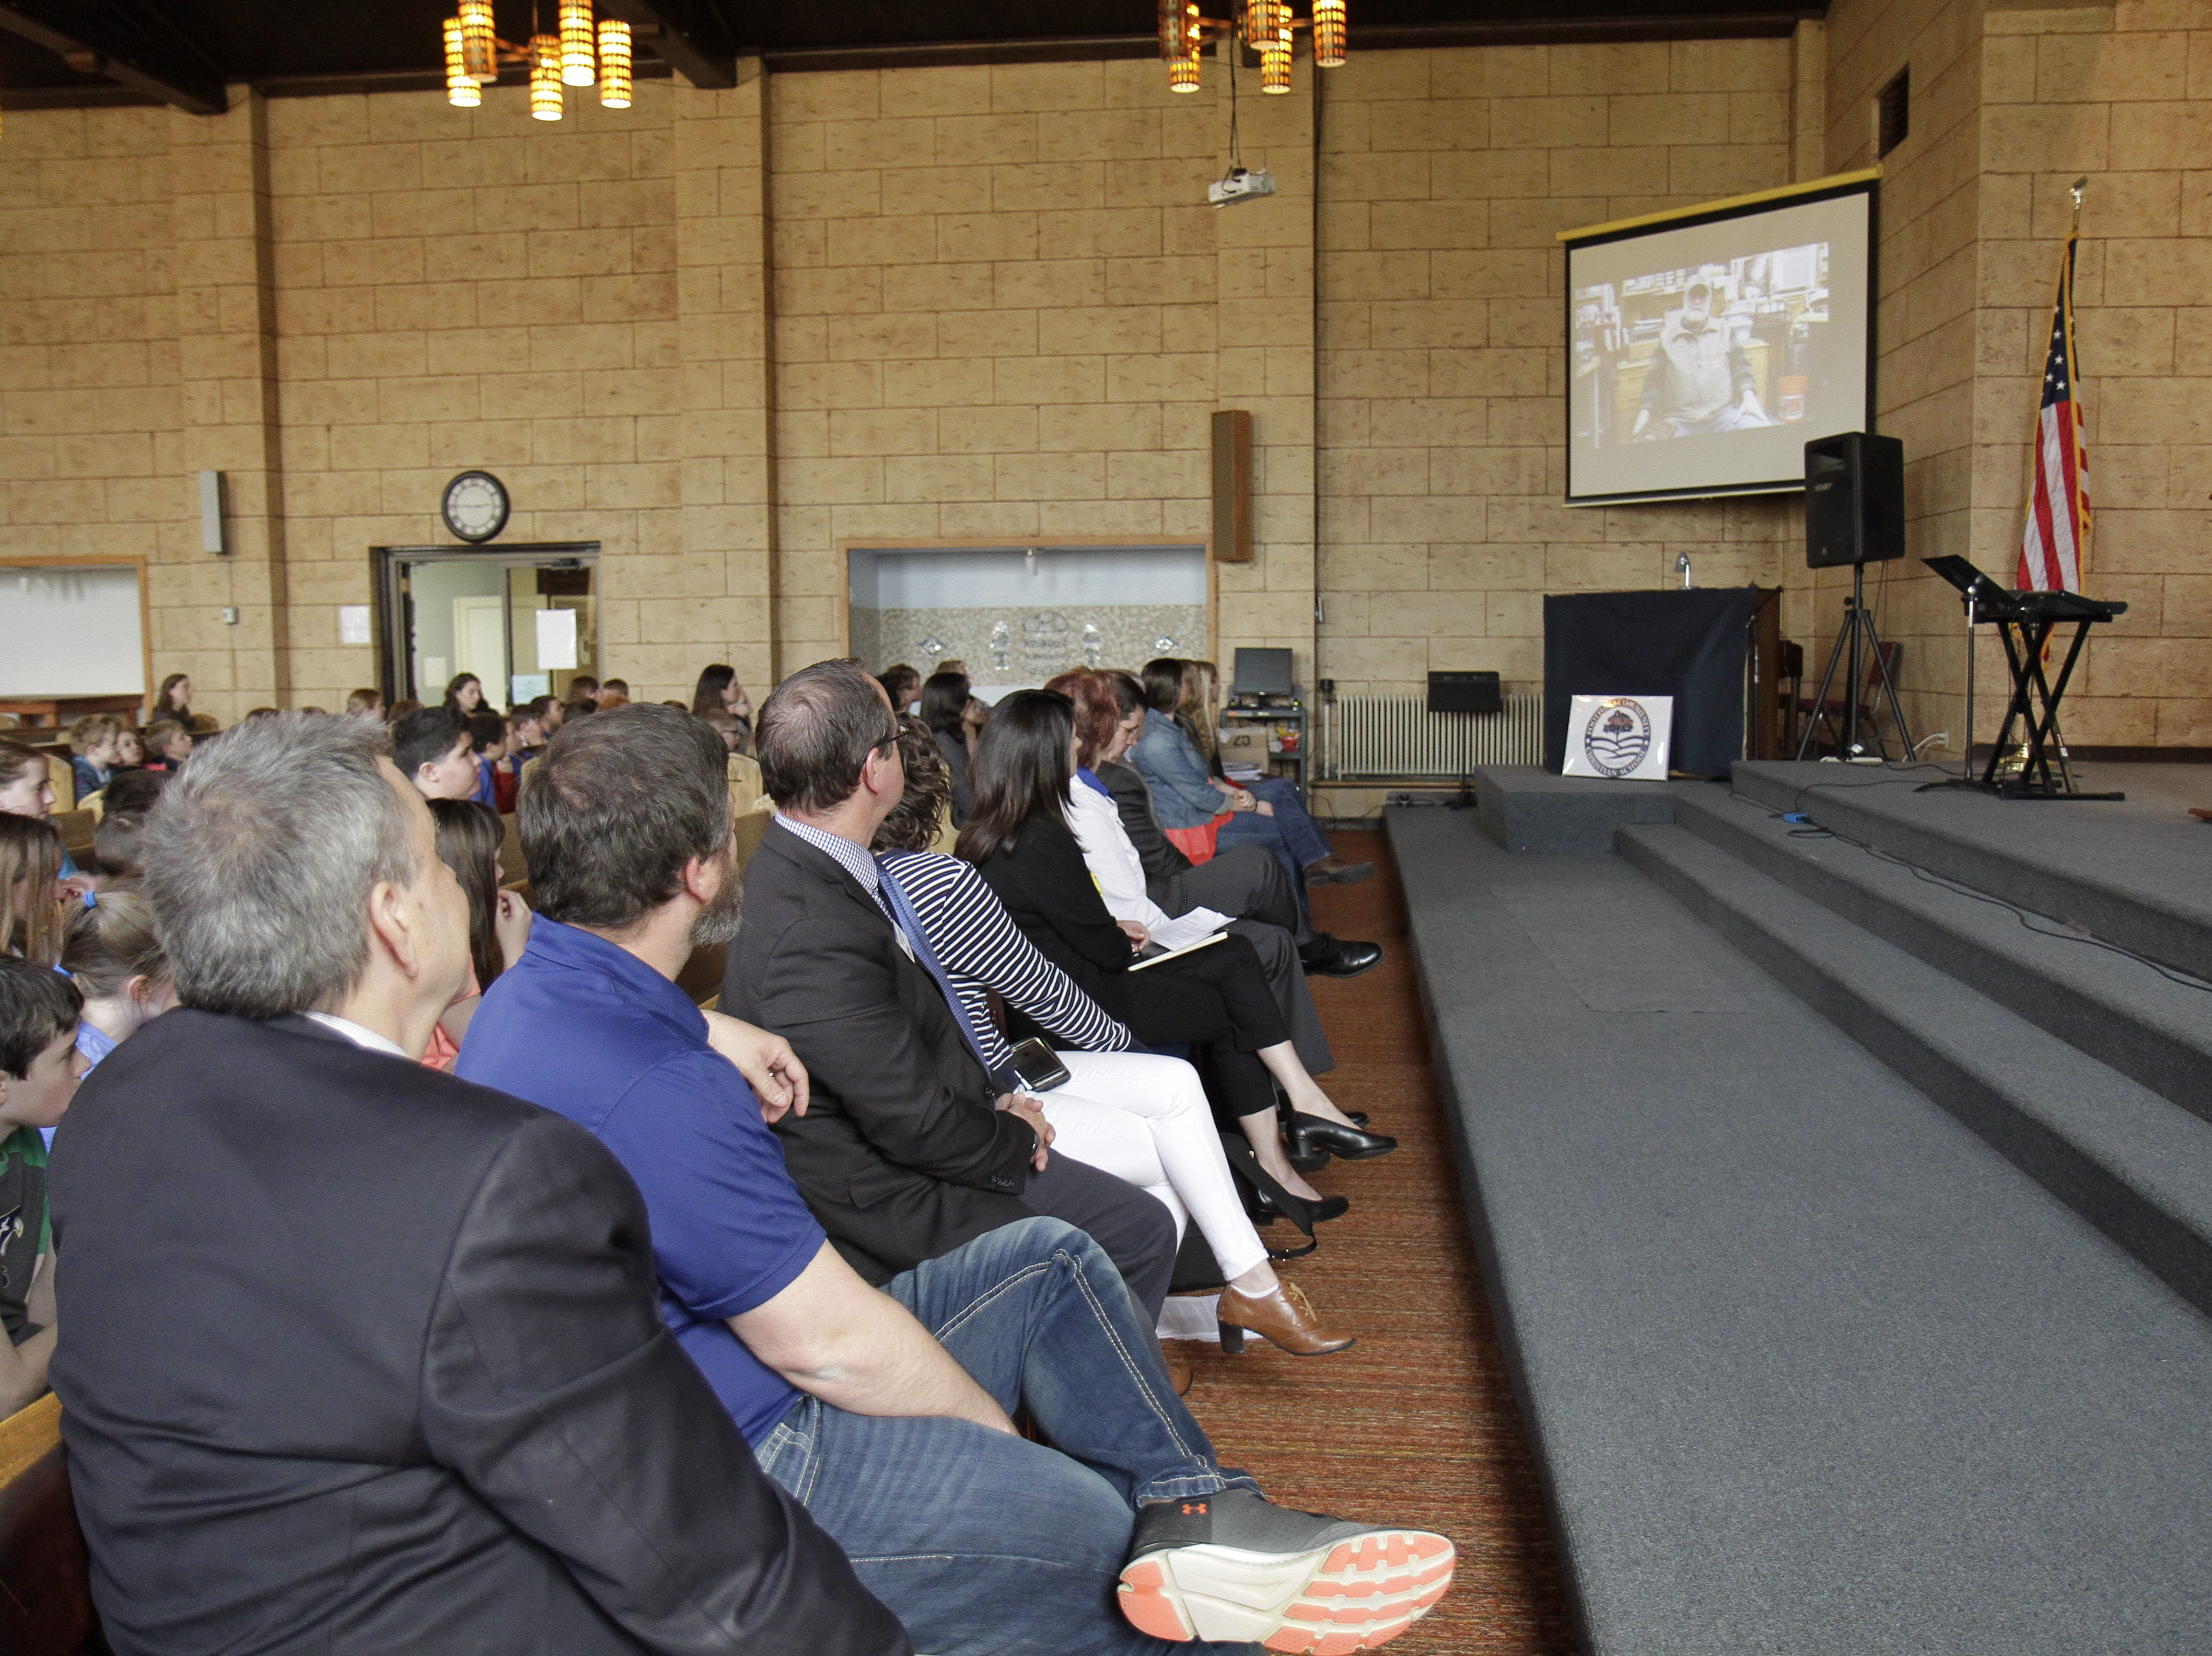 The school and city officials gathered to watch the documentary during the ceremony.